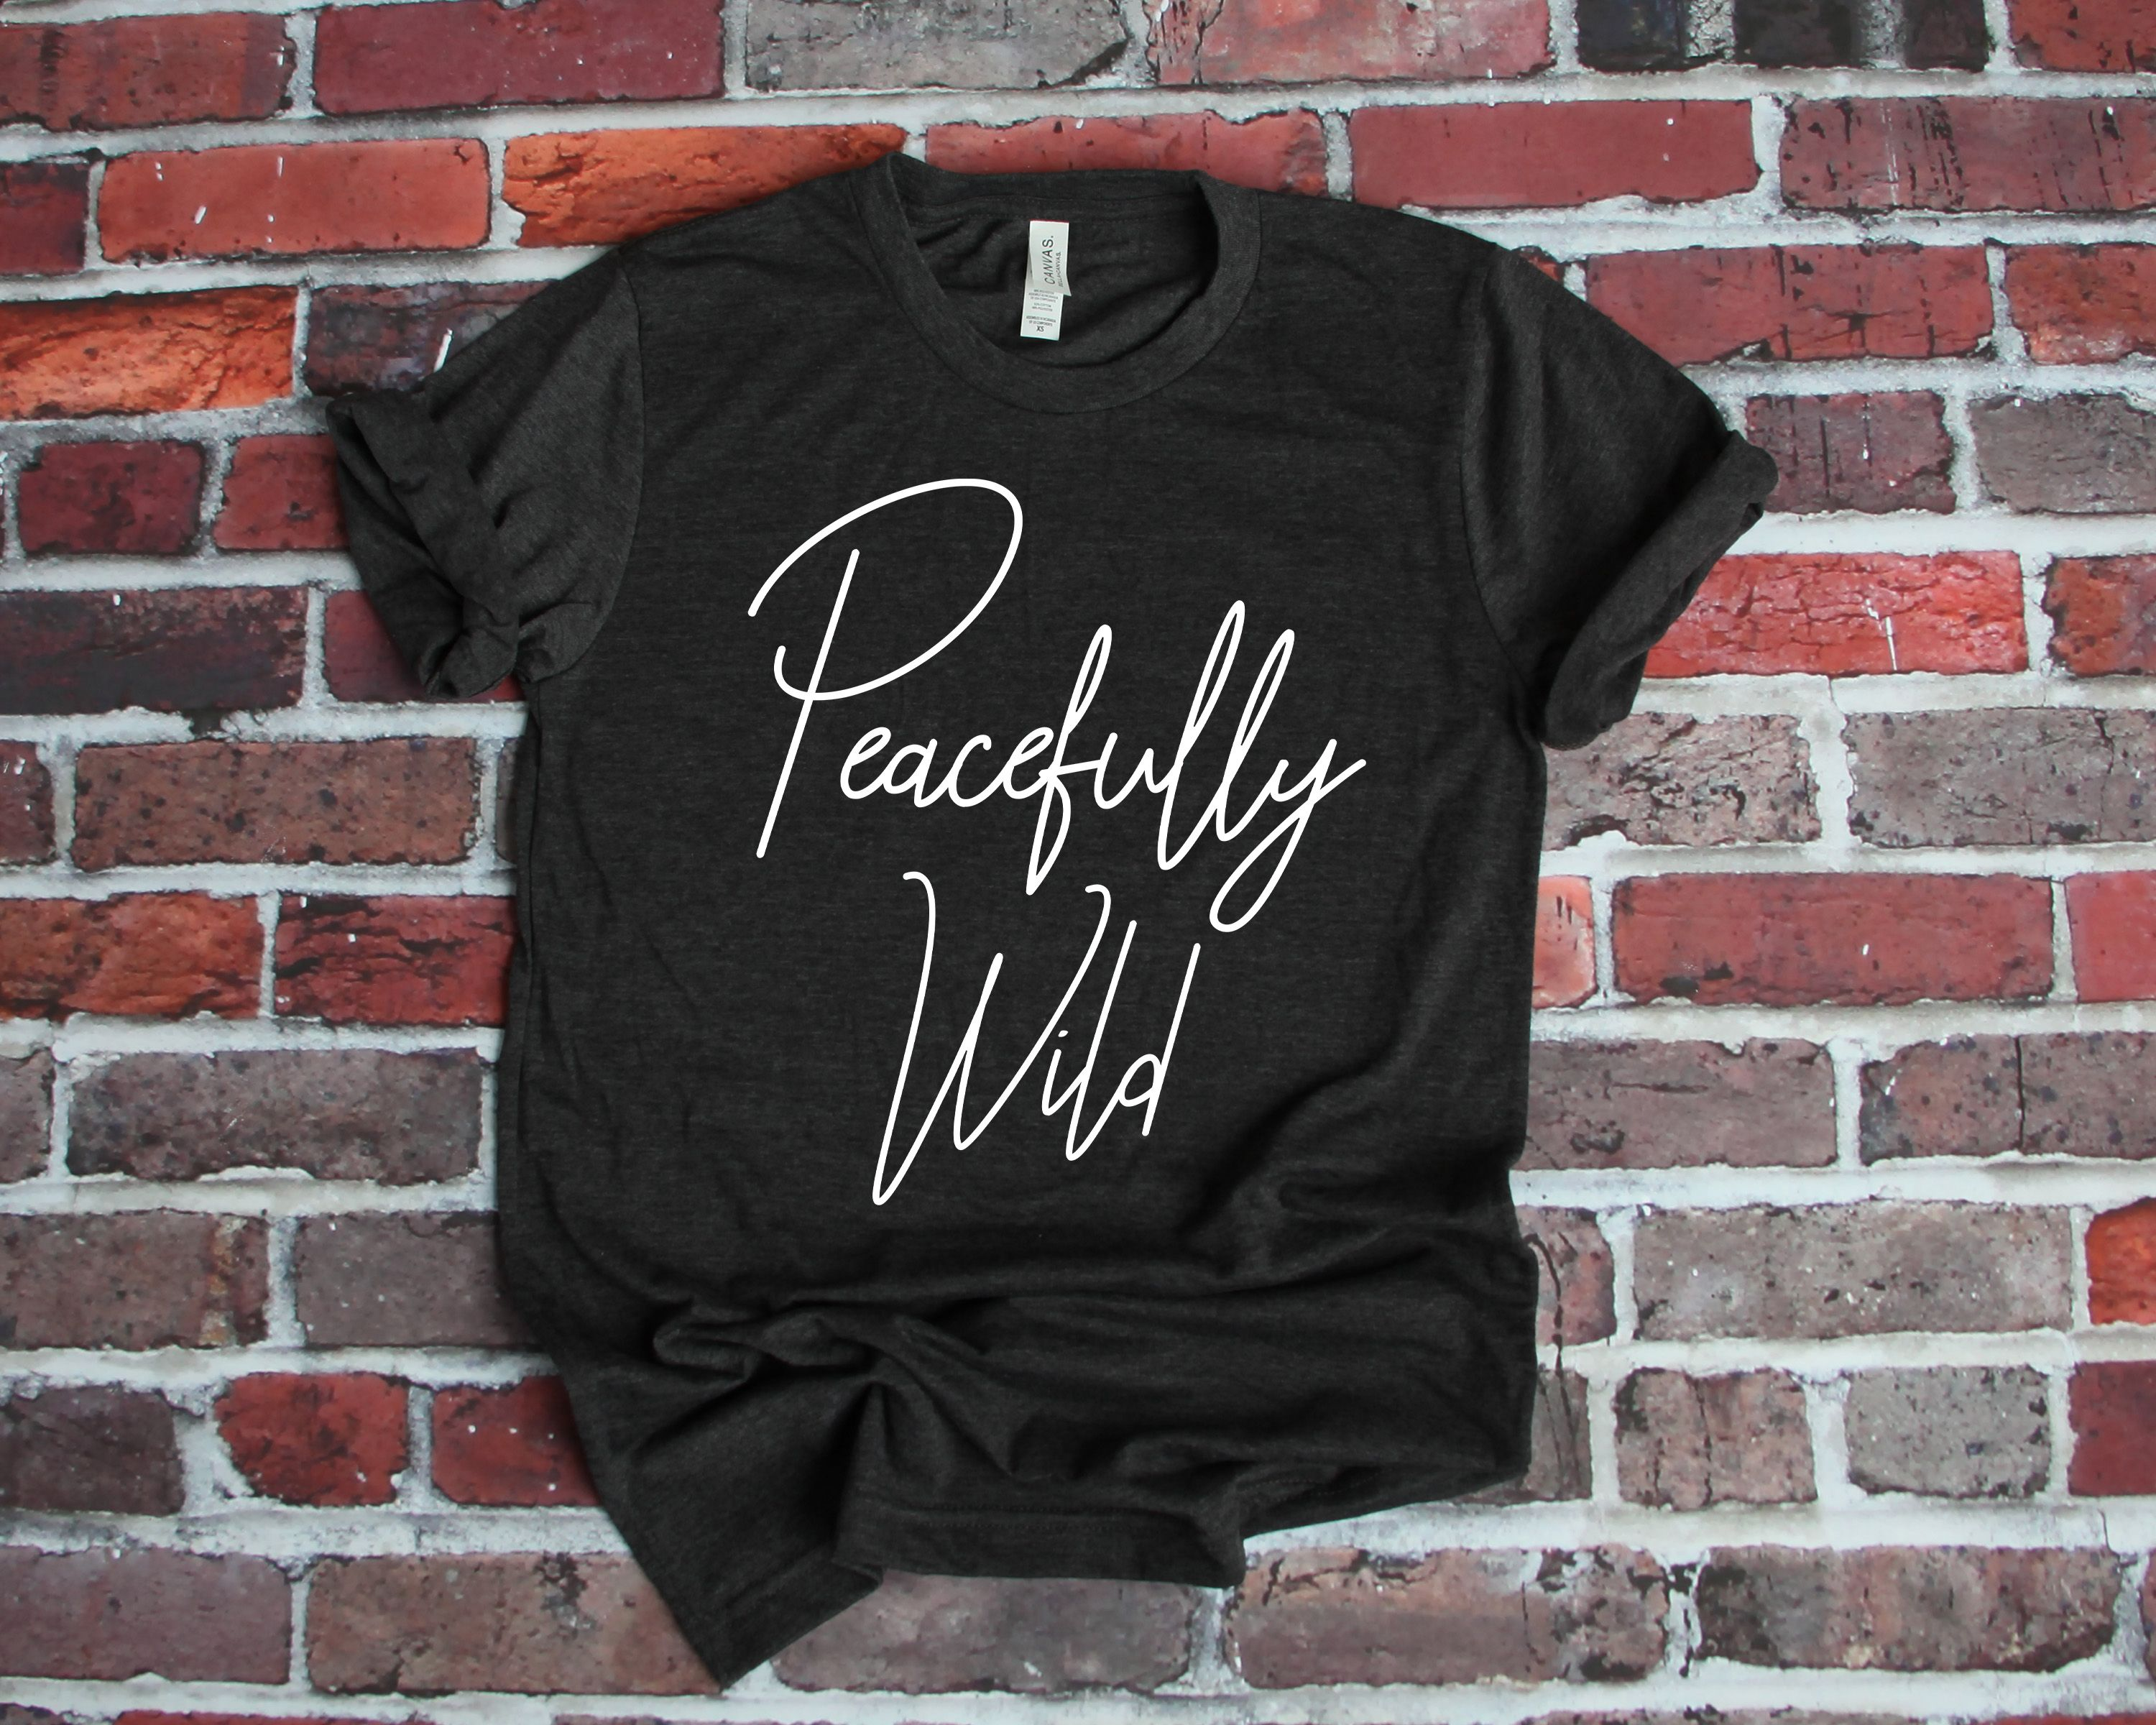 Yoga Clothes Yoga Shirt Peacefully Wild Shirt Unisex Shirt Yoga Tee Good Vibes Shirt Yoga T Shirt Gift For Her Shirts With Sayings In 2020 Good Vibes Shirt Vibes Shirt Funny